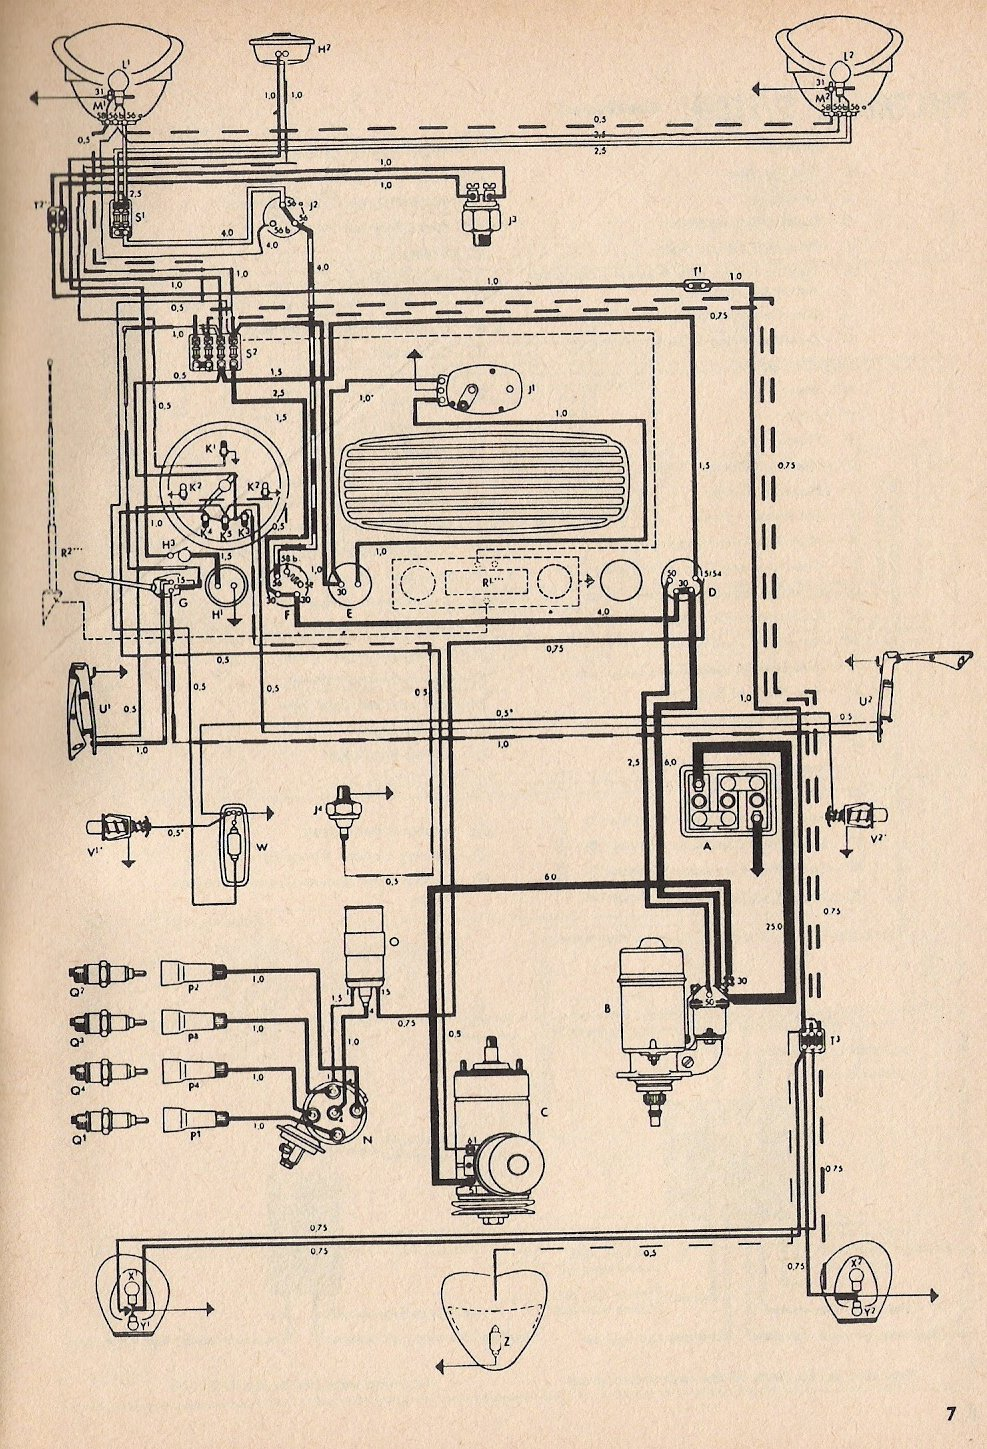 bug_54 1954 beetle wiring diagram thegoldenbug com vw beetle wiring diagram at pacquiaovsvargaslive.co